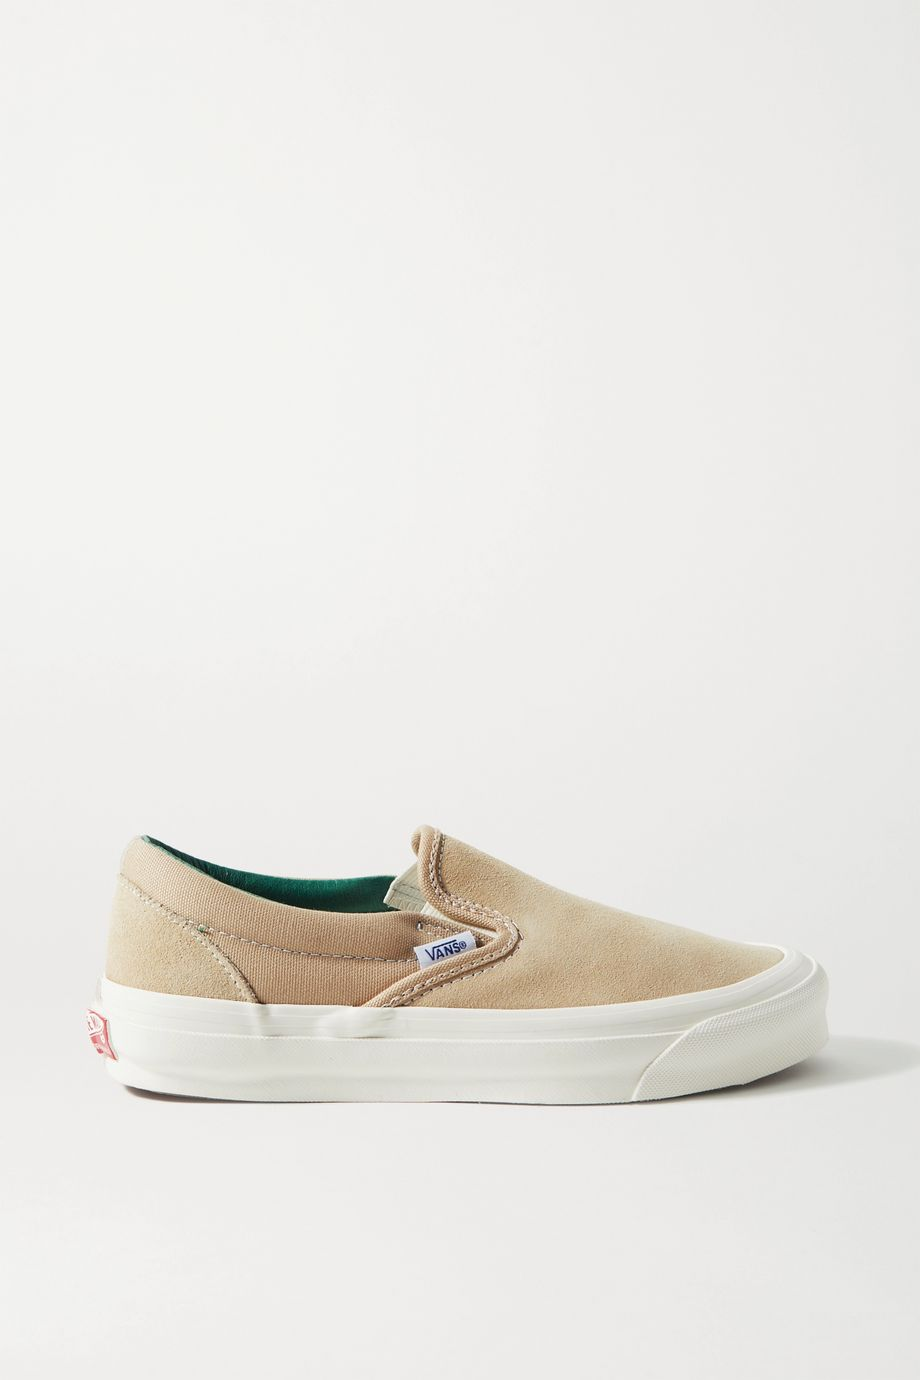 Vans OG Classic LX suede and canvas slip-on sneakers